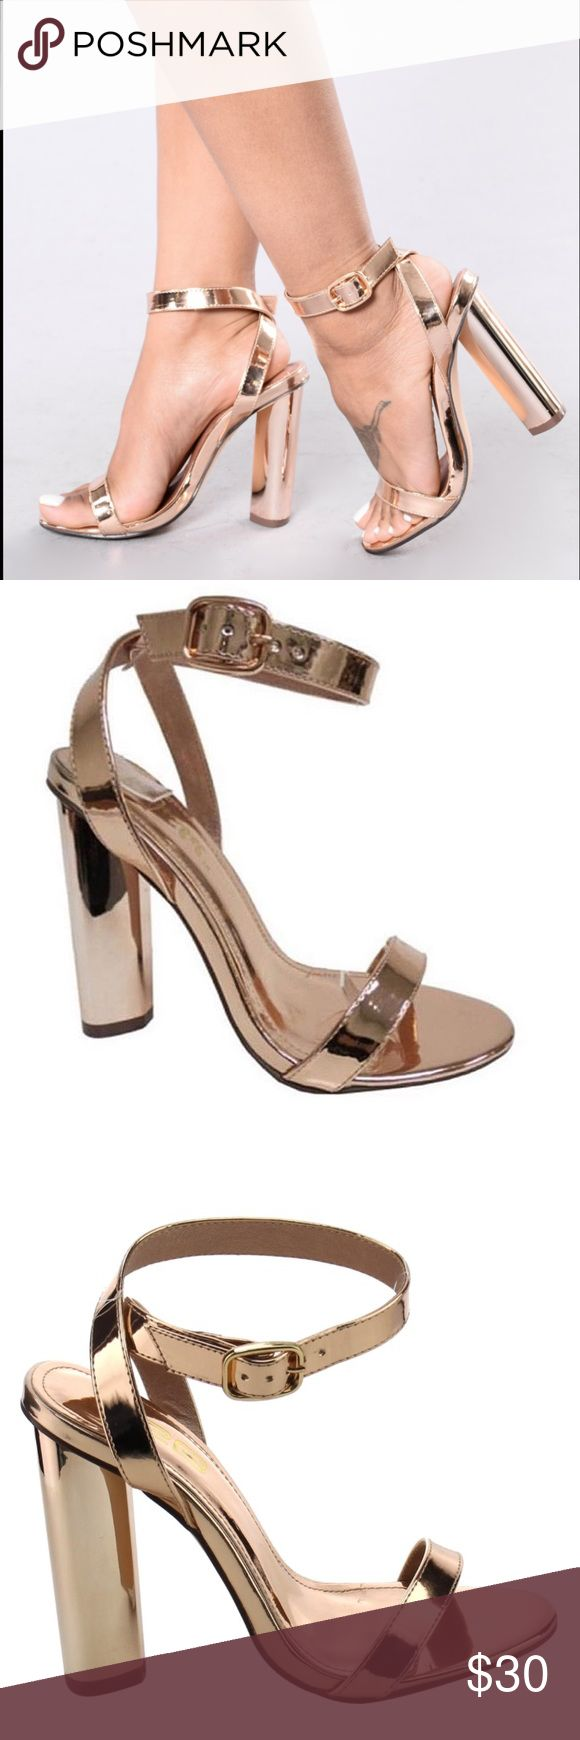 Lustful Rose Gold Designed with criss cross strap ankle strap,adjustable buckle closure, round toe shape, padded insole, single sole and chunky heel.  Material: Faux leather (man-made)  Measurement: Heel 4.25″  Closure: Ankle Strap  Fit: True to size Shoes Heels